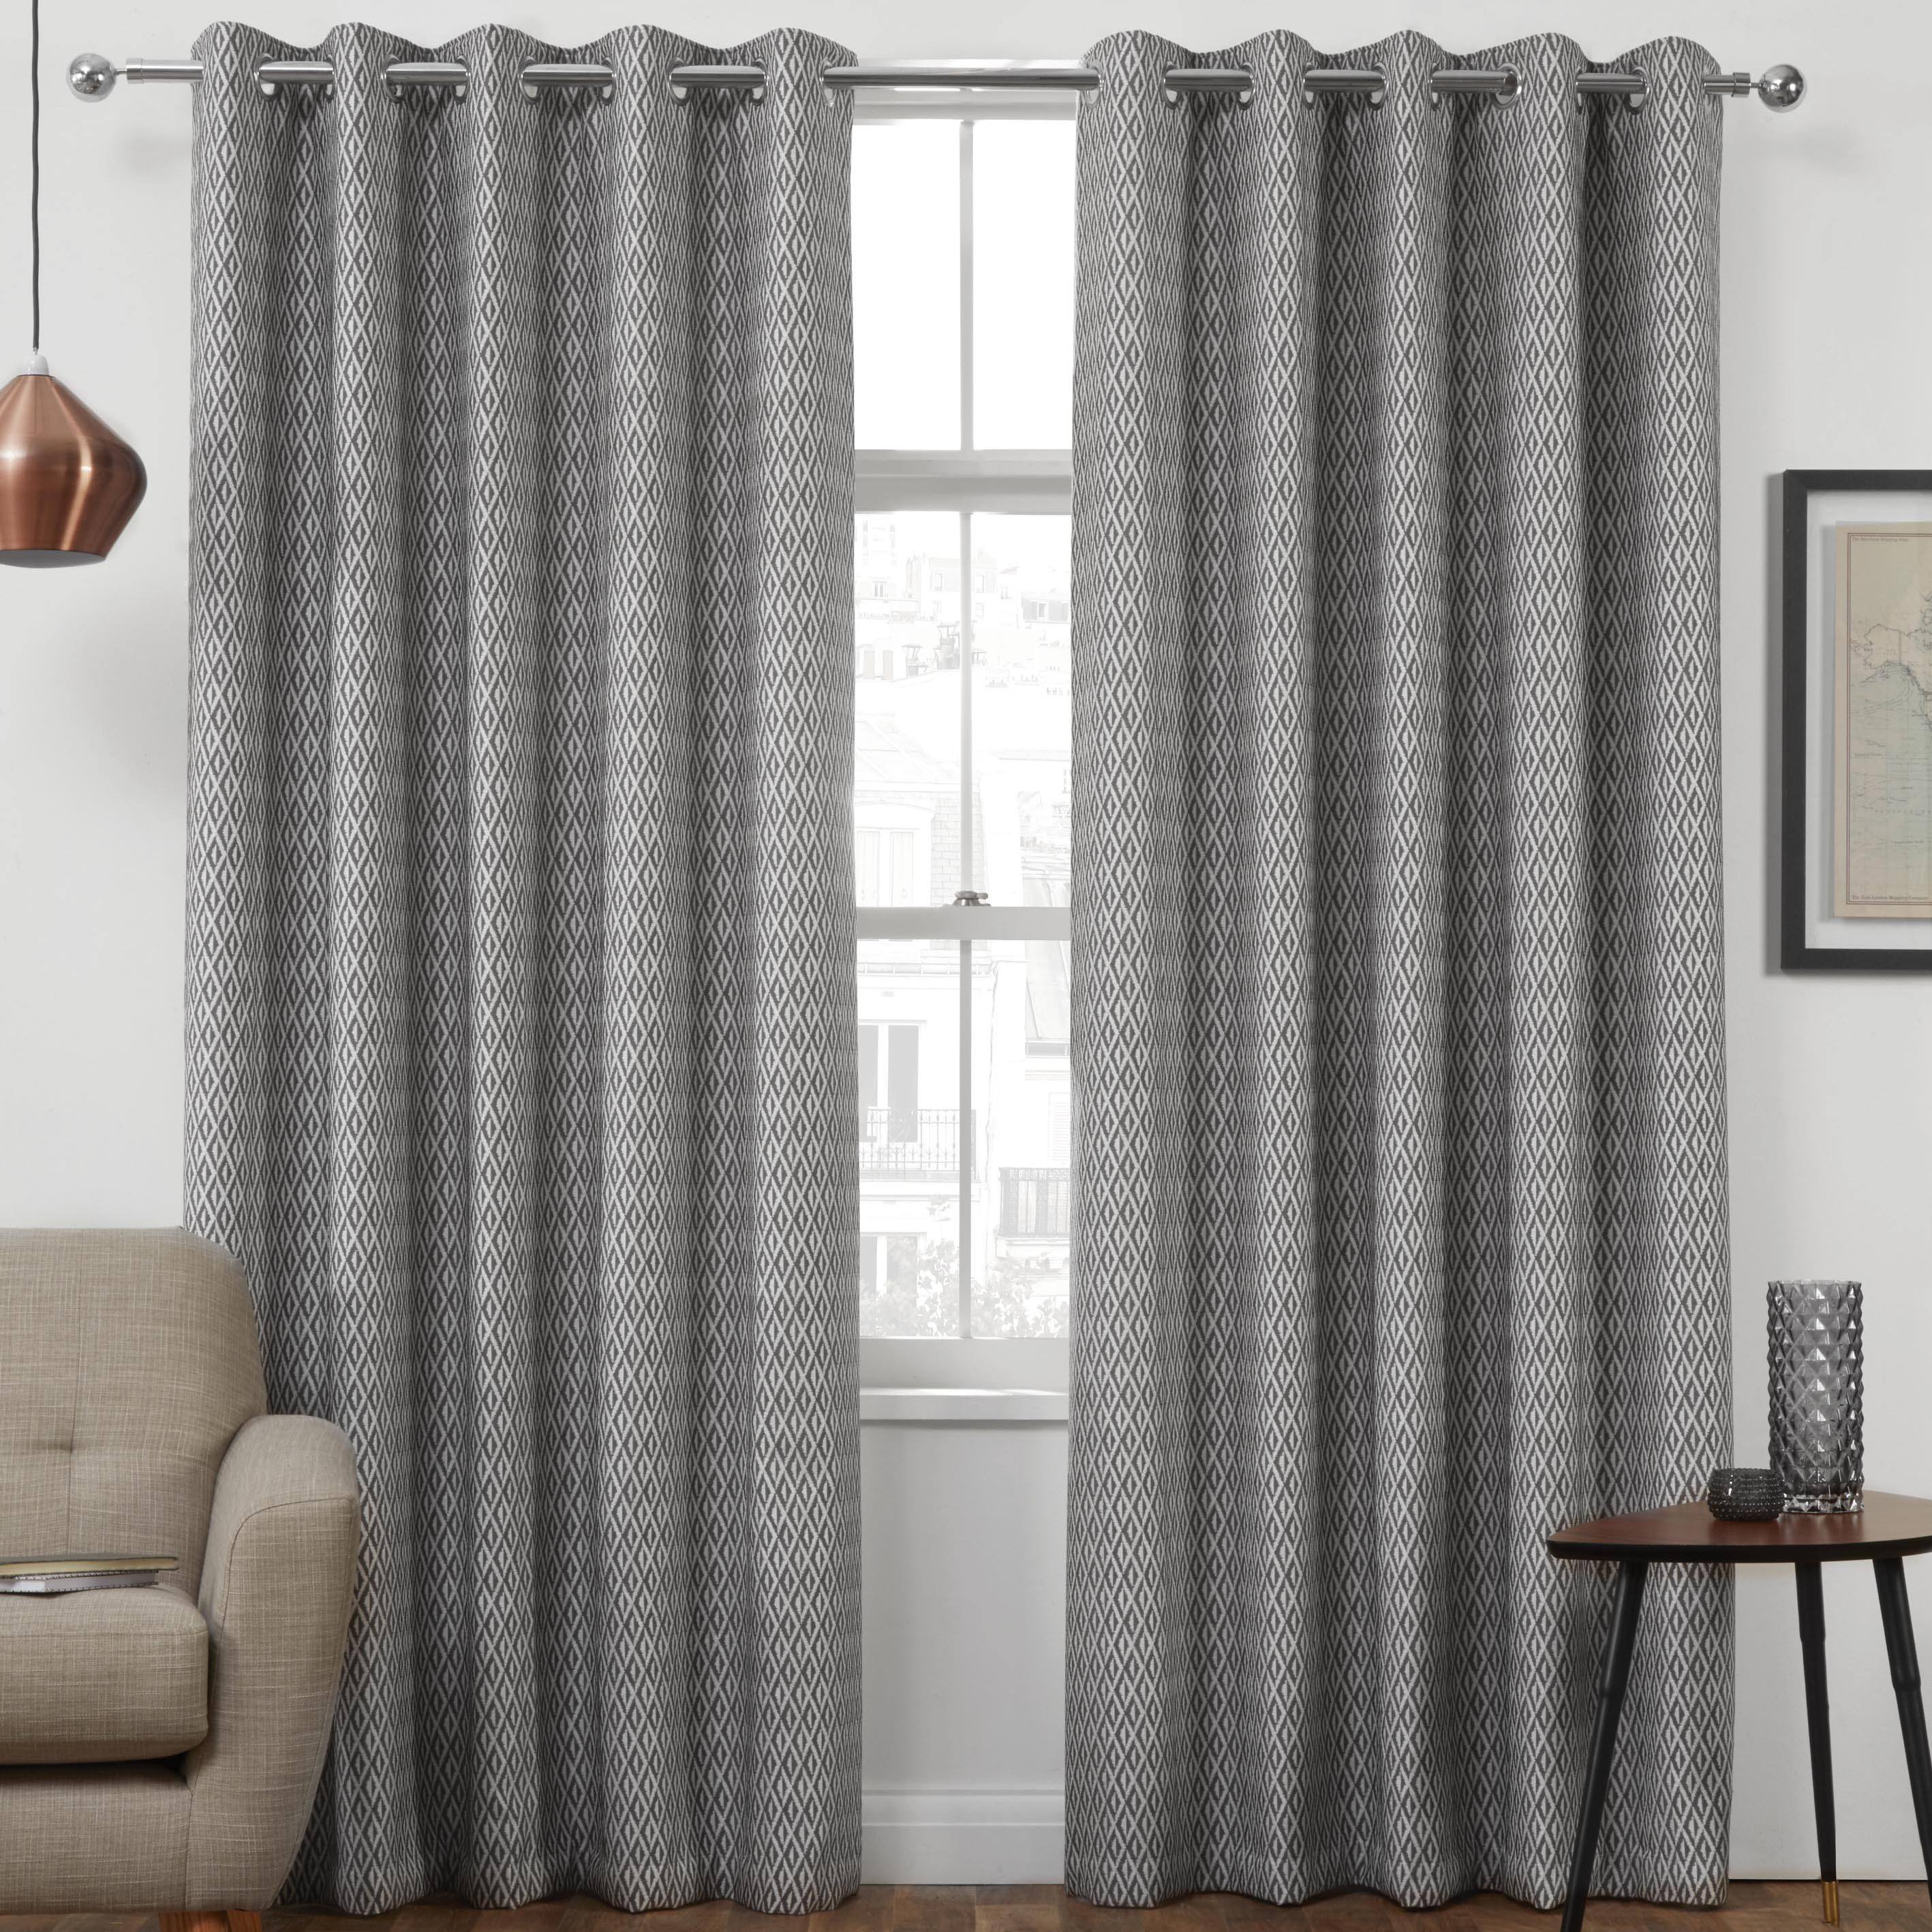 Ready Made Thermal Curtains Phoenix Thermal Interlined Luxury Ready Made Eyelet Curtains Charcoal